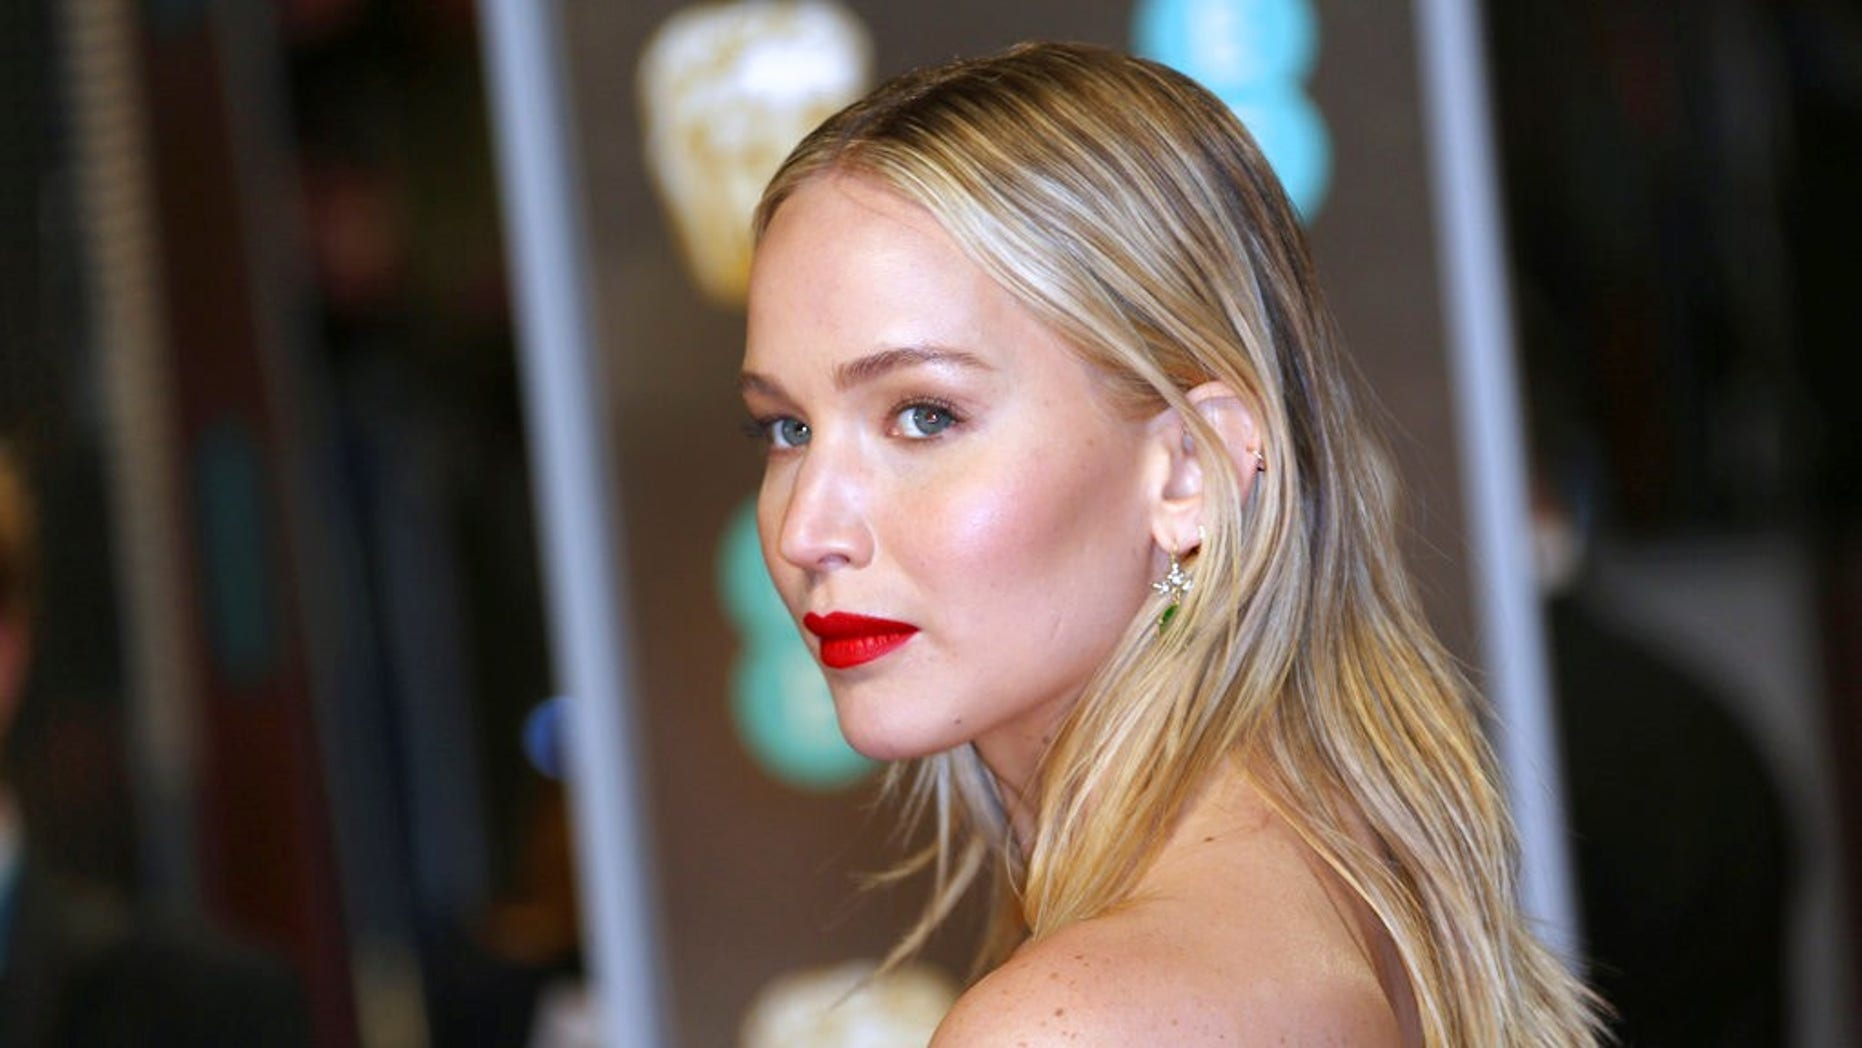 Jennifer Lawrence is reportedly dating a New York art gallerist named Cooke Maroney.